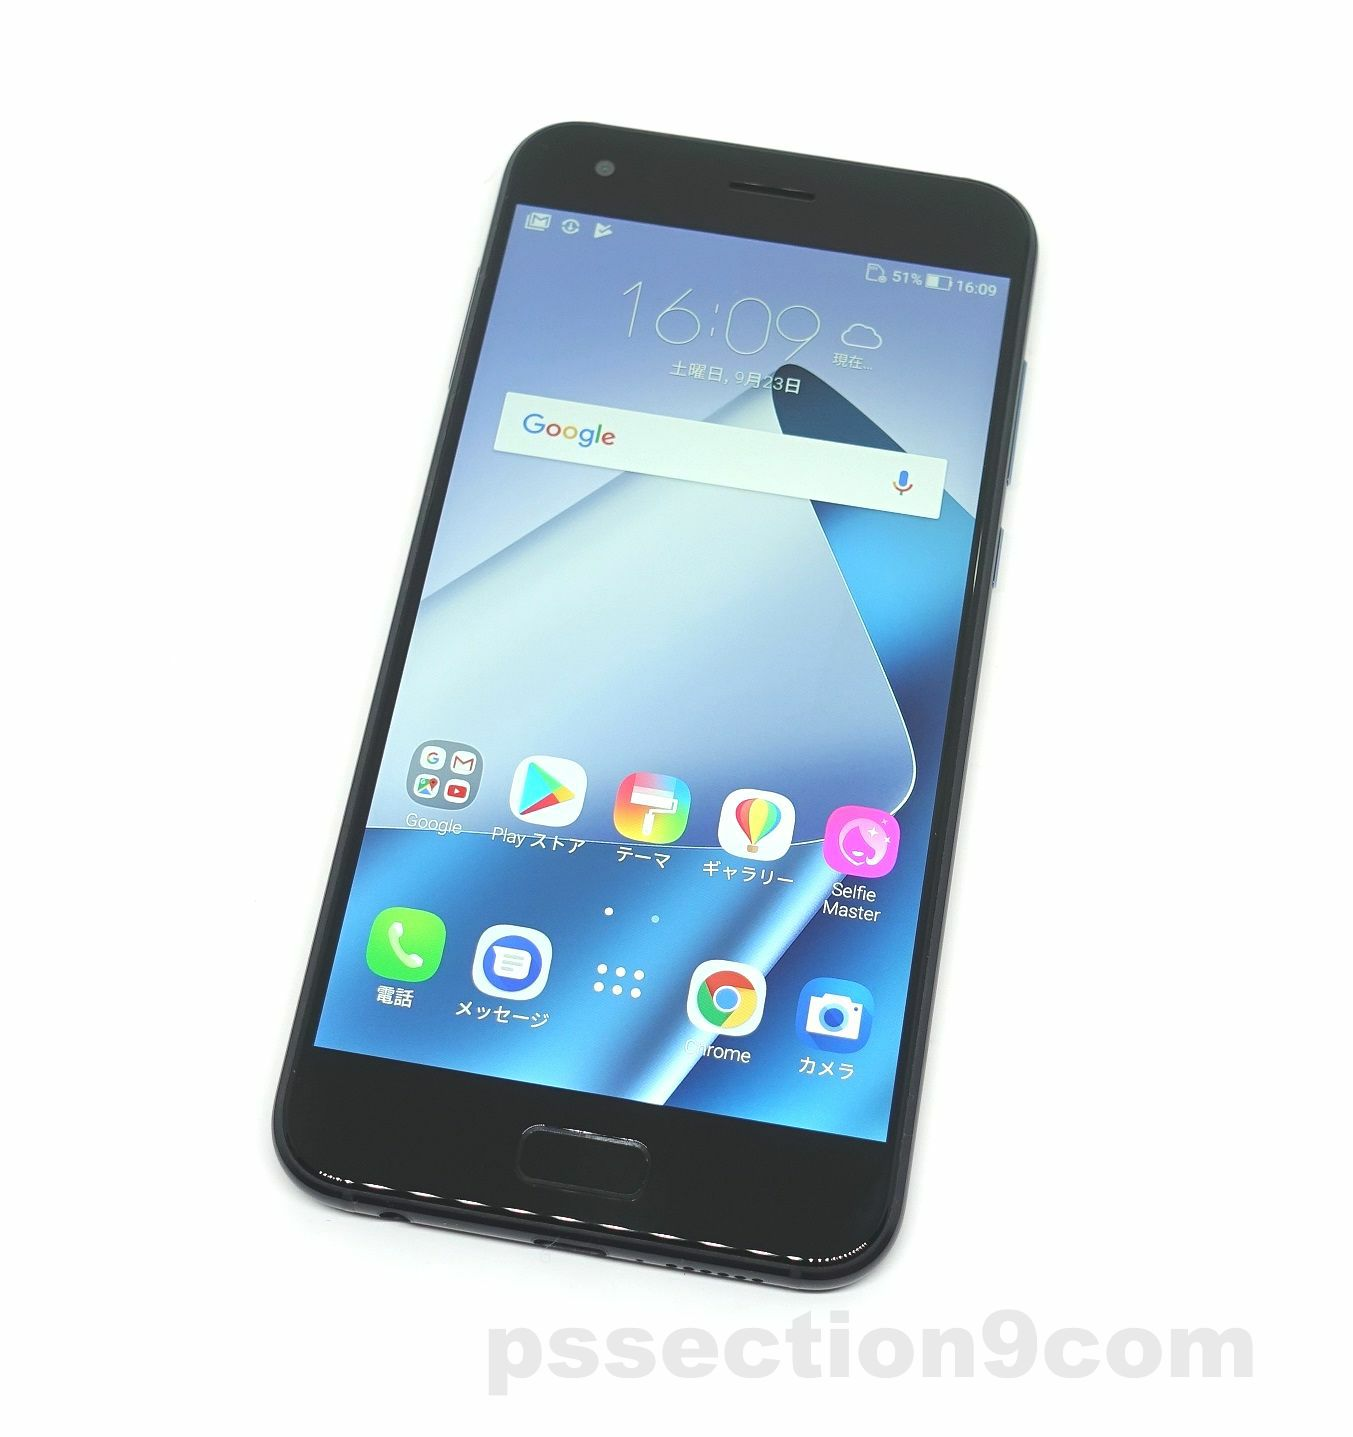 https://pssection9.com/wp-content/uploads/2017/09/ASUS-ZenFone-4-review-11.jpg